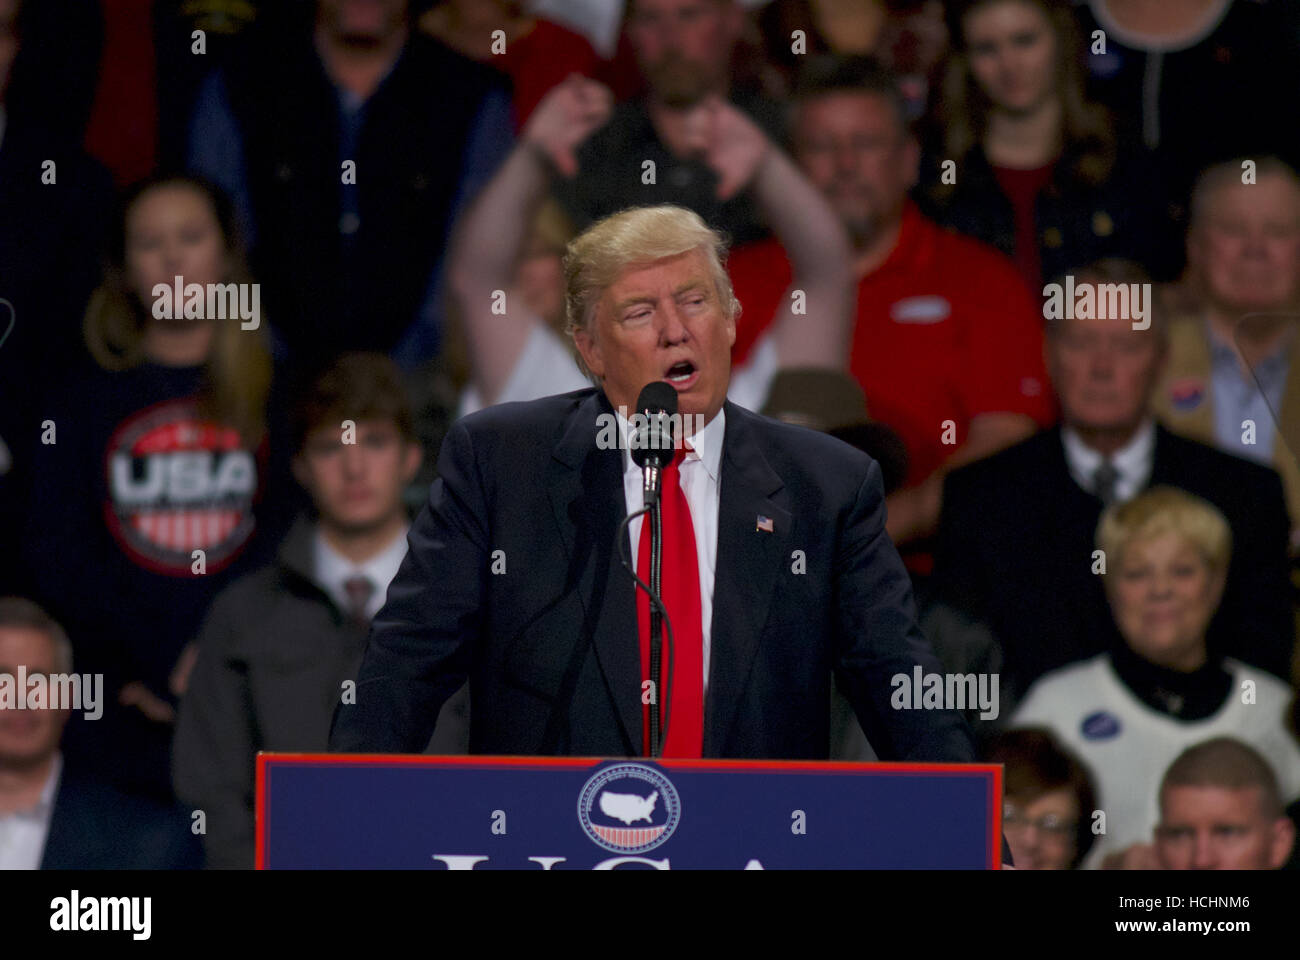 Des Moines, Iowa, USA, 8th December, 2016 President elect Donald Trump addresses a crowd of supporters n the HyVee - Stock Image